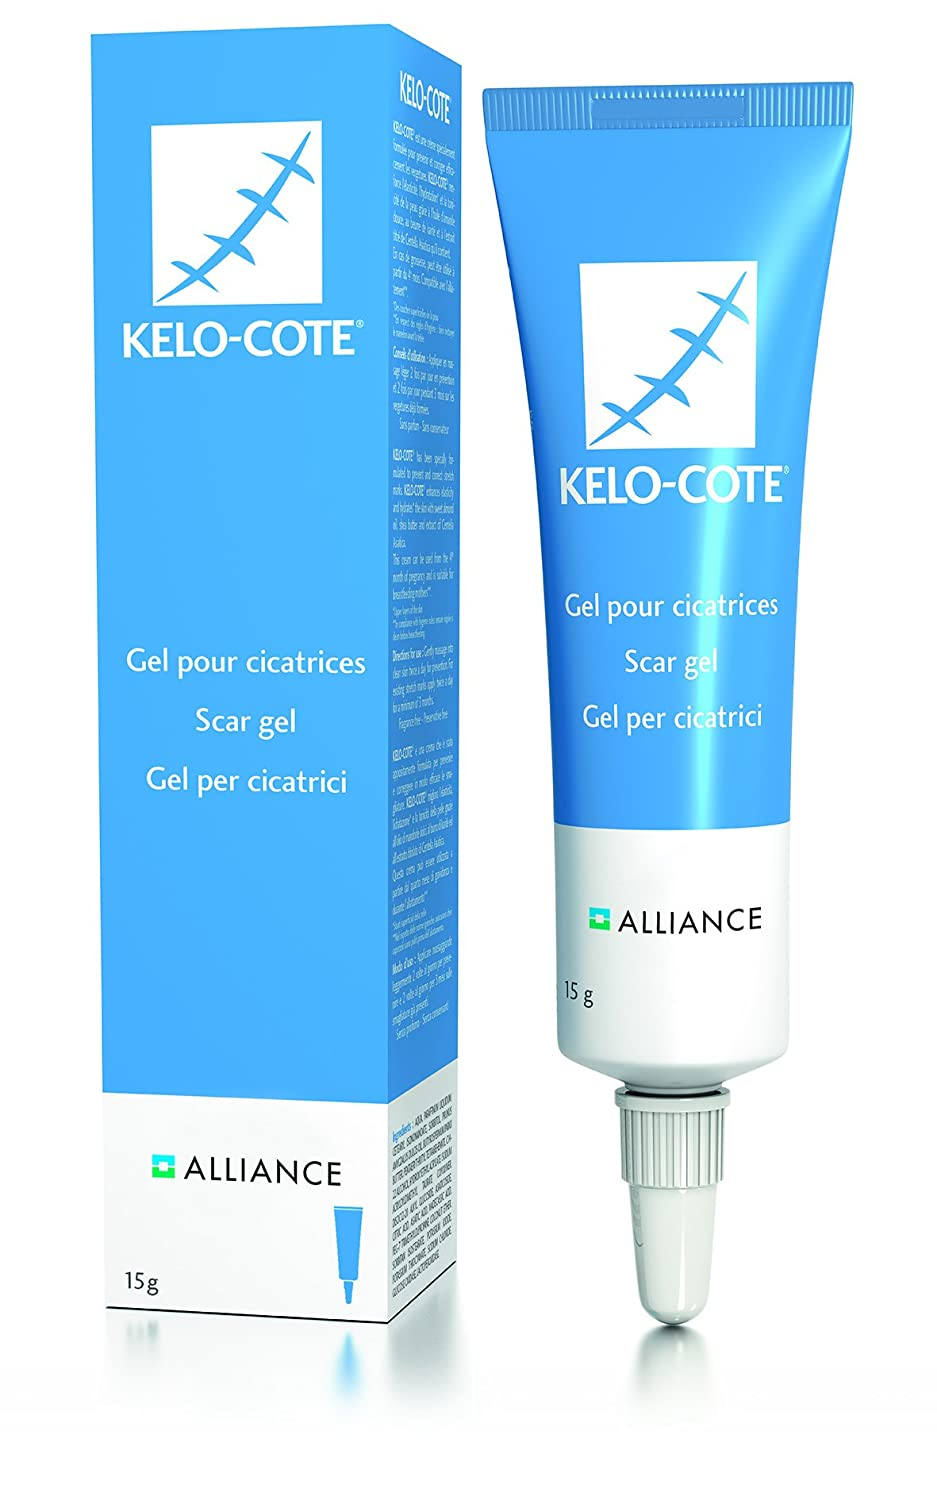 Alliance Kelo-Cote Gel